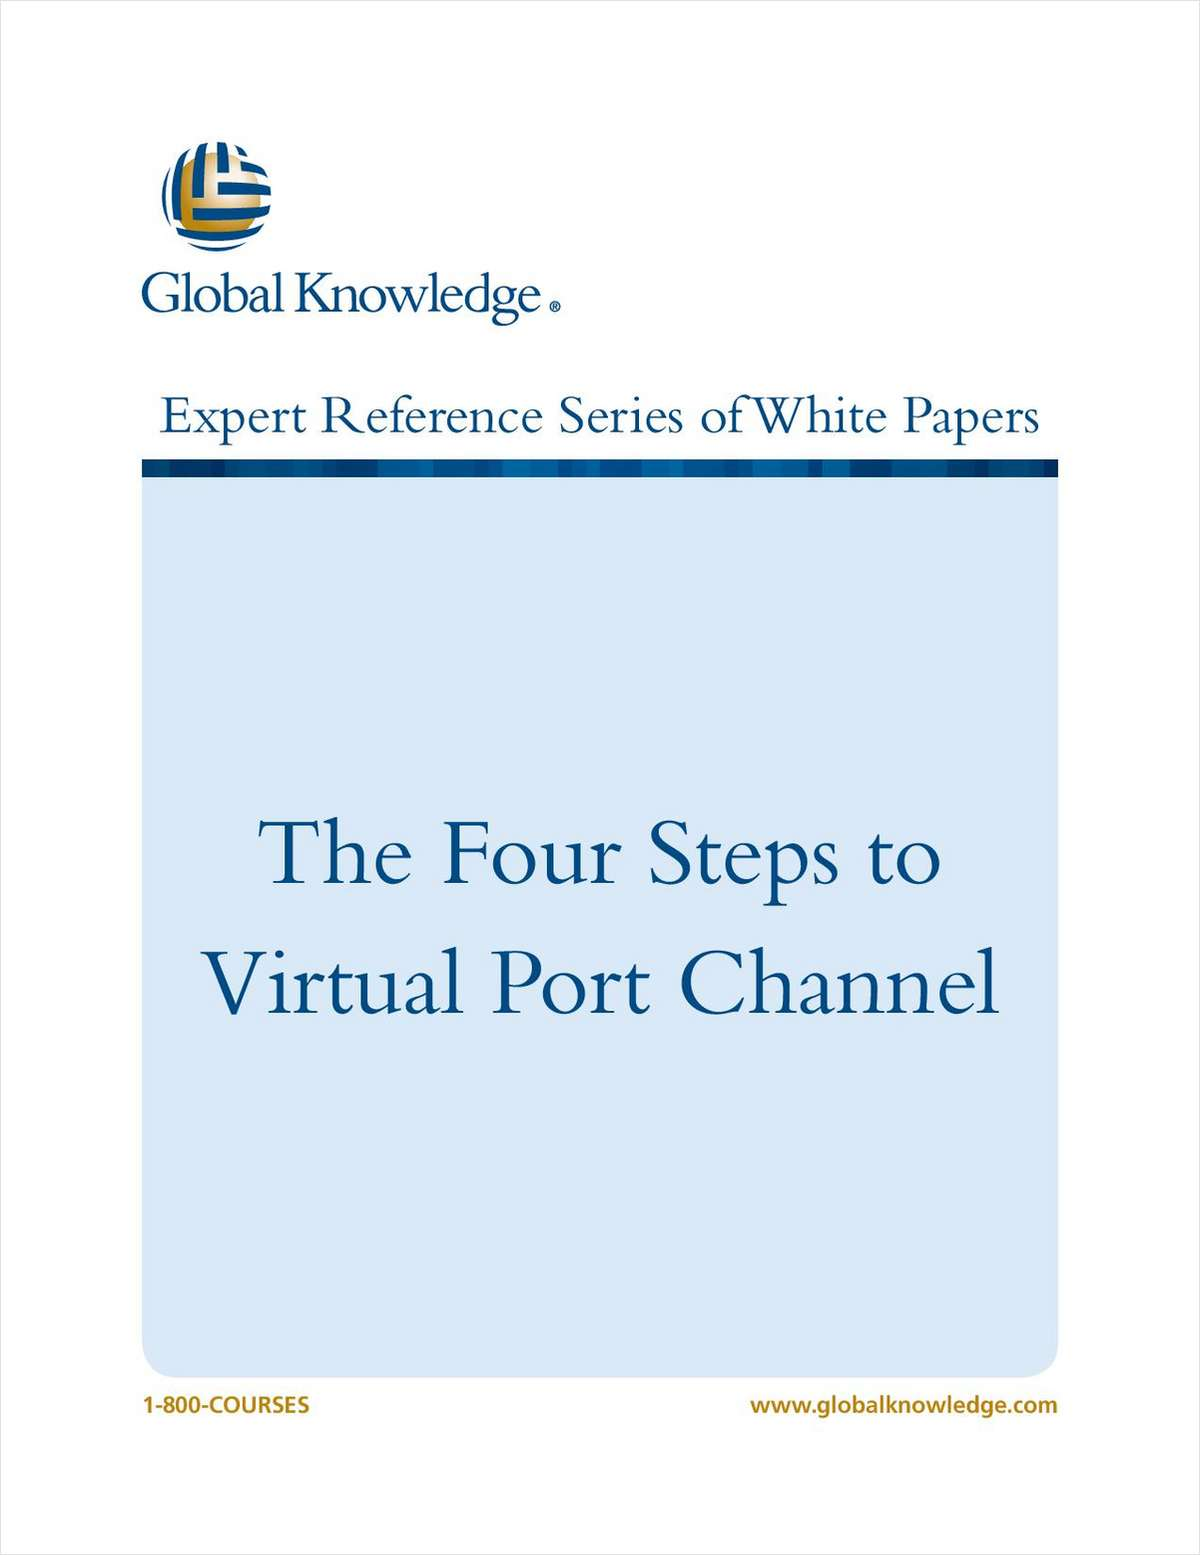 The Four Steps to Virtual Port Channel